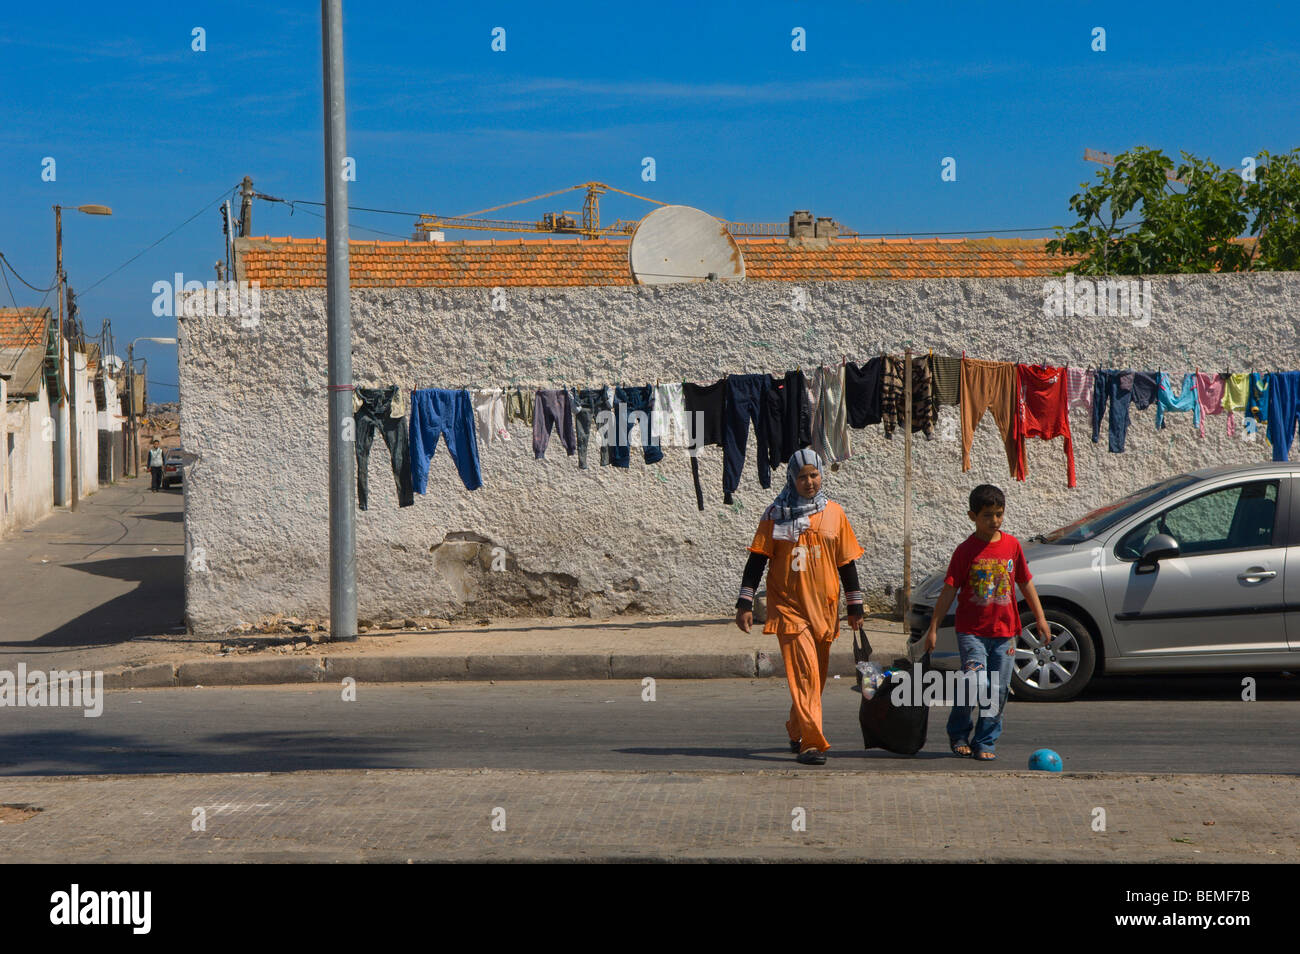 Laundry on a clothes line in a back street in Casablanca, Morocco, Africa - Stock Image